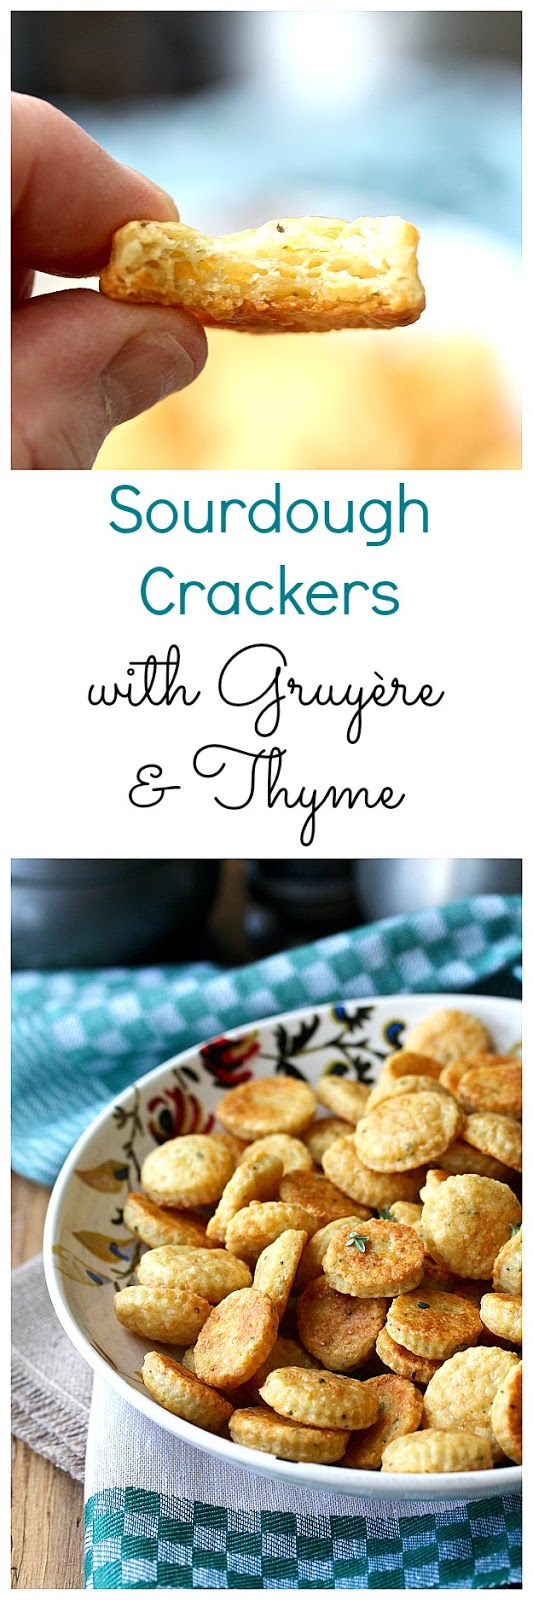 Sourdough Crackers with Gruyère and Thyme